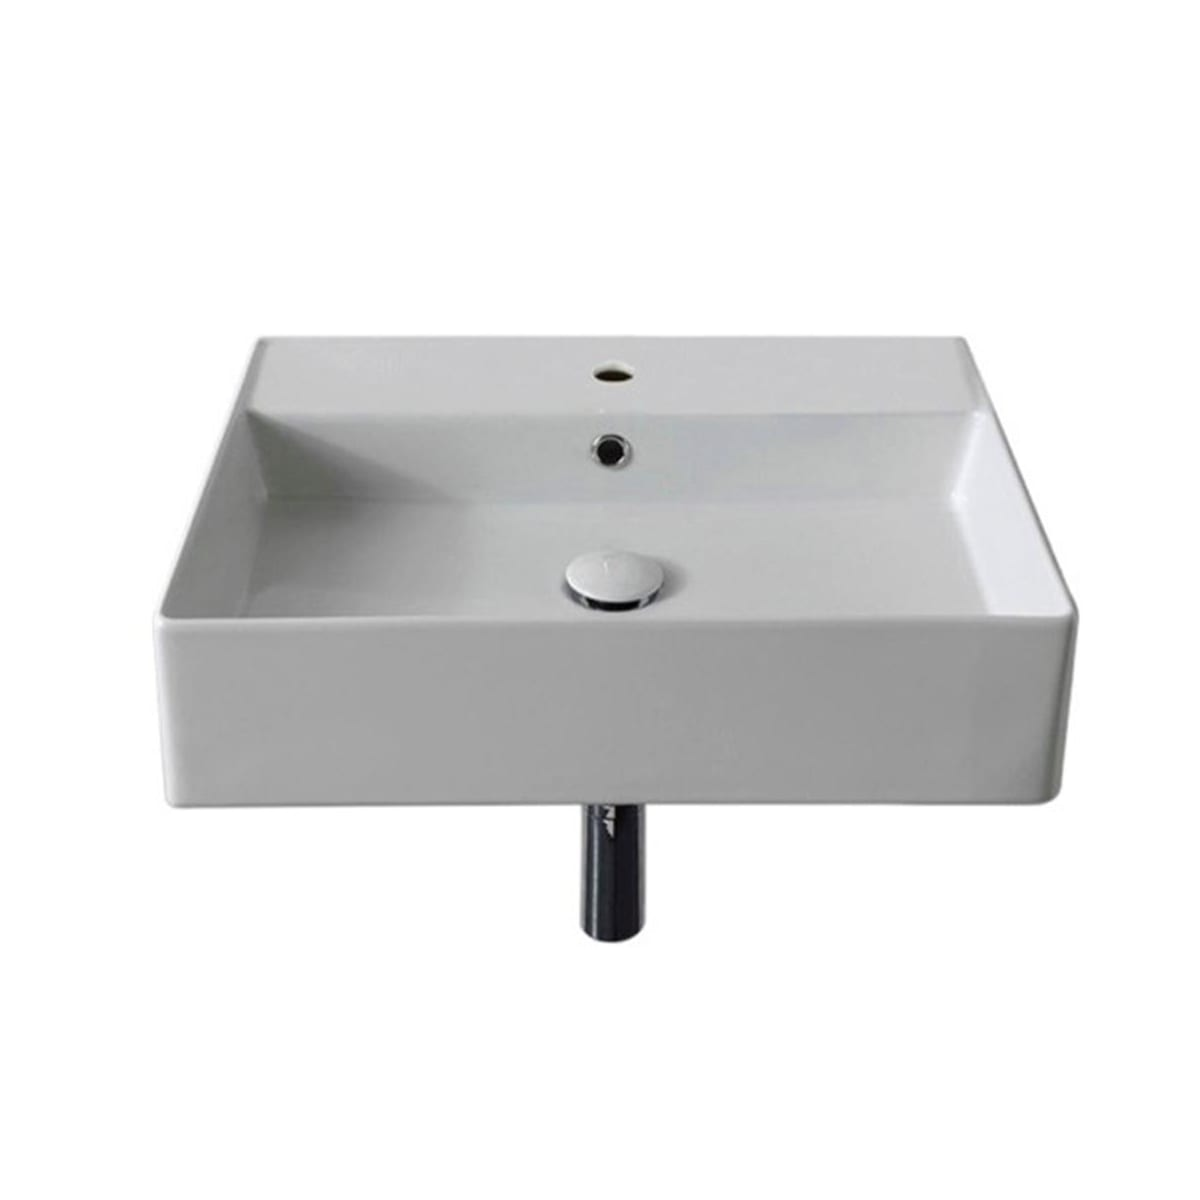 Nameeks Scarabeo 5111 Three Hole White Three Hole Scarabeo Teorema 2 0 20 Rectangular Ceramic Vessel Or Wall Mounted Bathroom Sink With Overflow Faucet Com